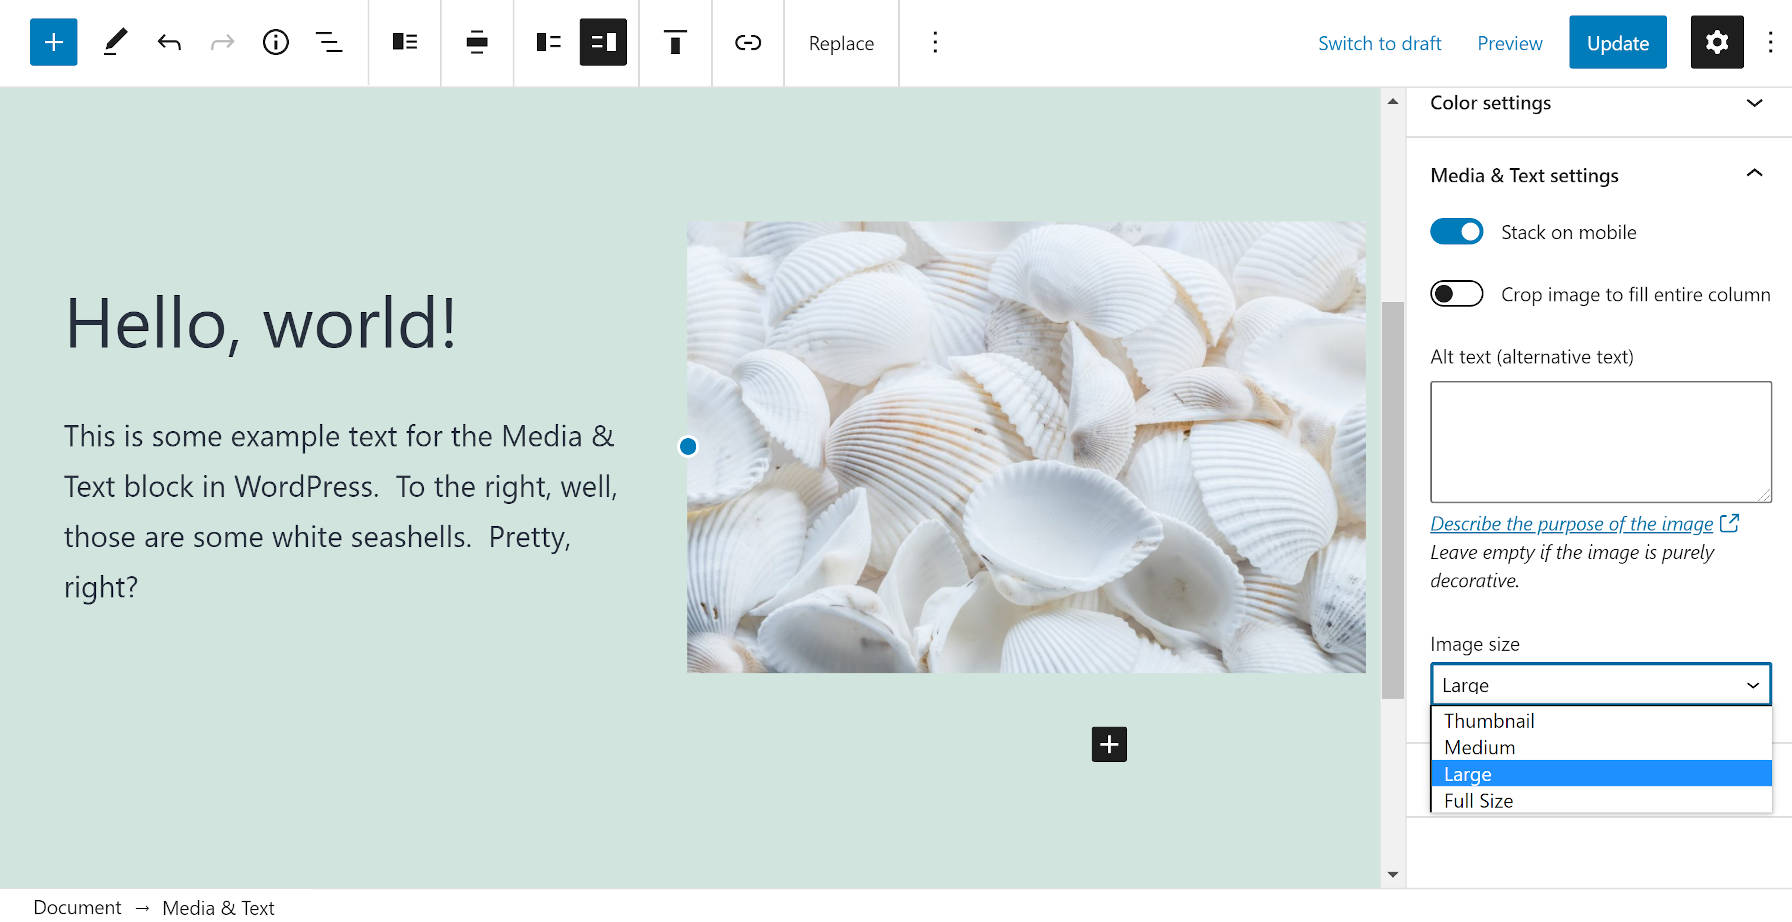 Media & Text block in the WordPress editor.